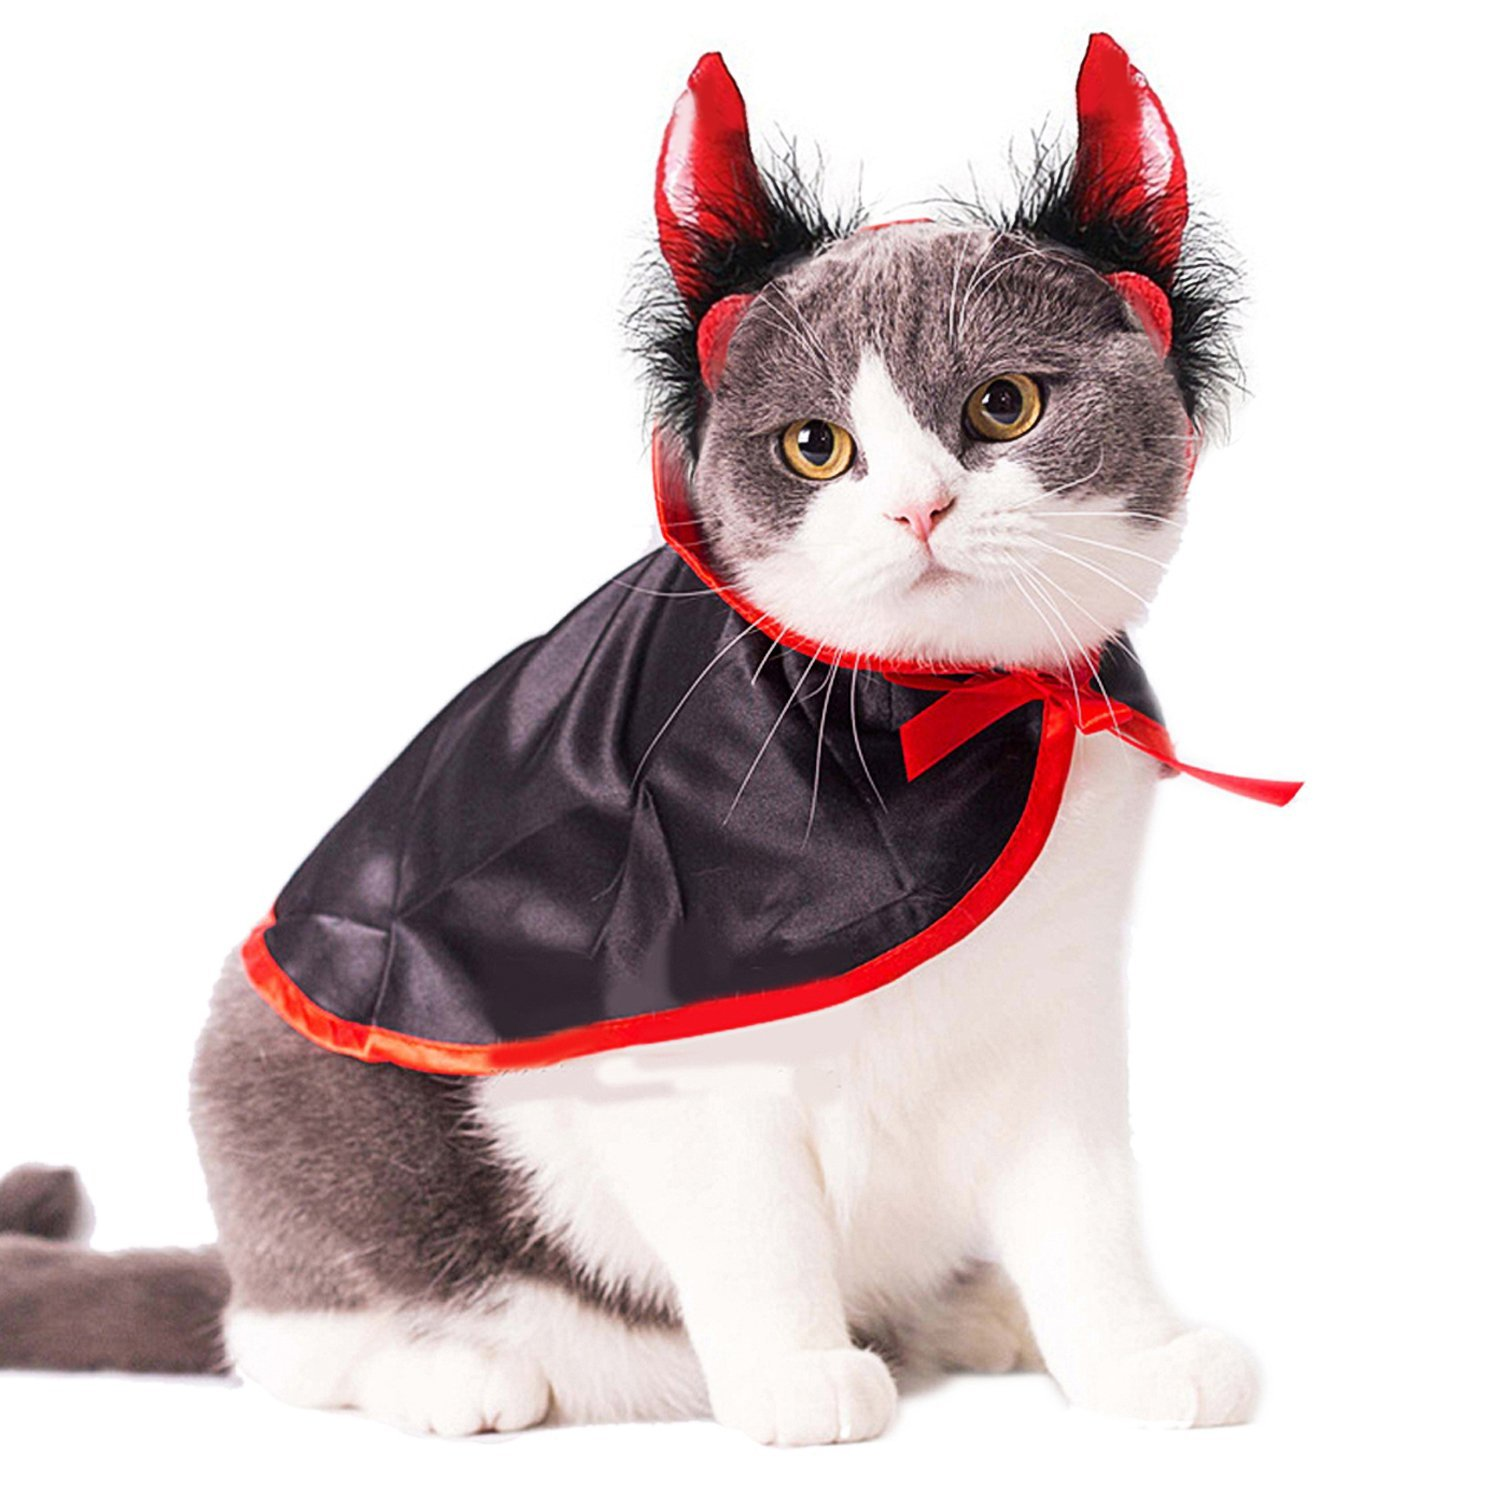 Legendog Cat Costume Pet Costumes Red Velvet Pet Cape Cat Halloween Costume Pet Apparel for Small Dogs and Cats (cat Cape and hat)